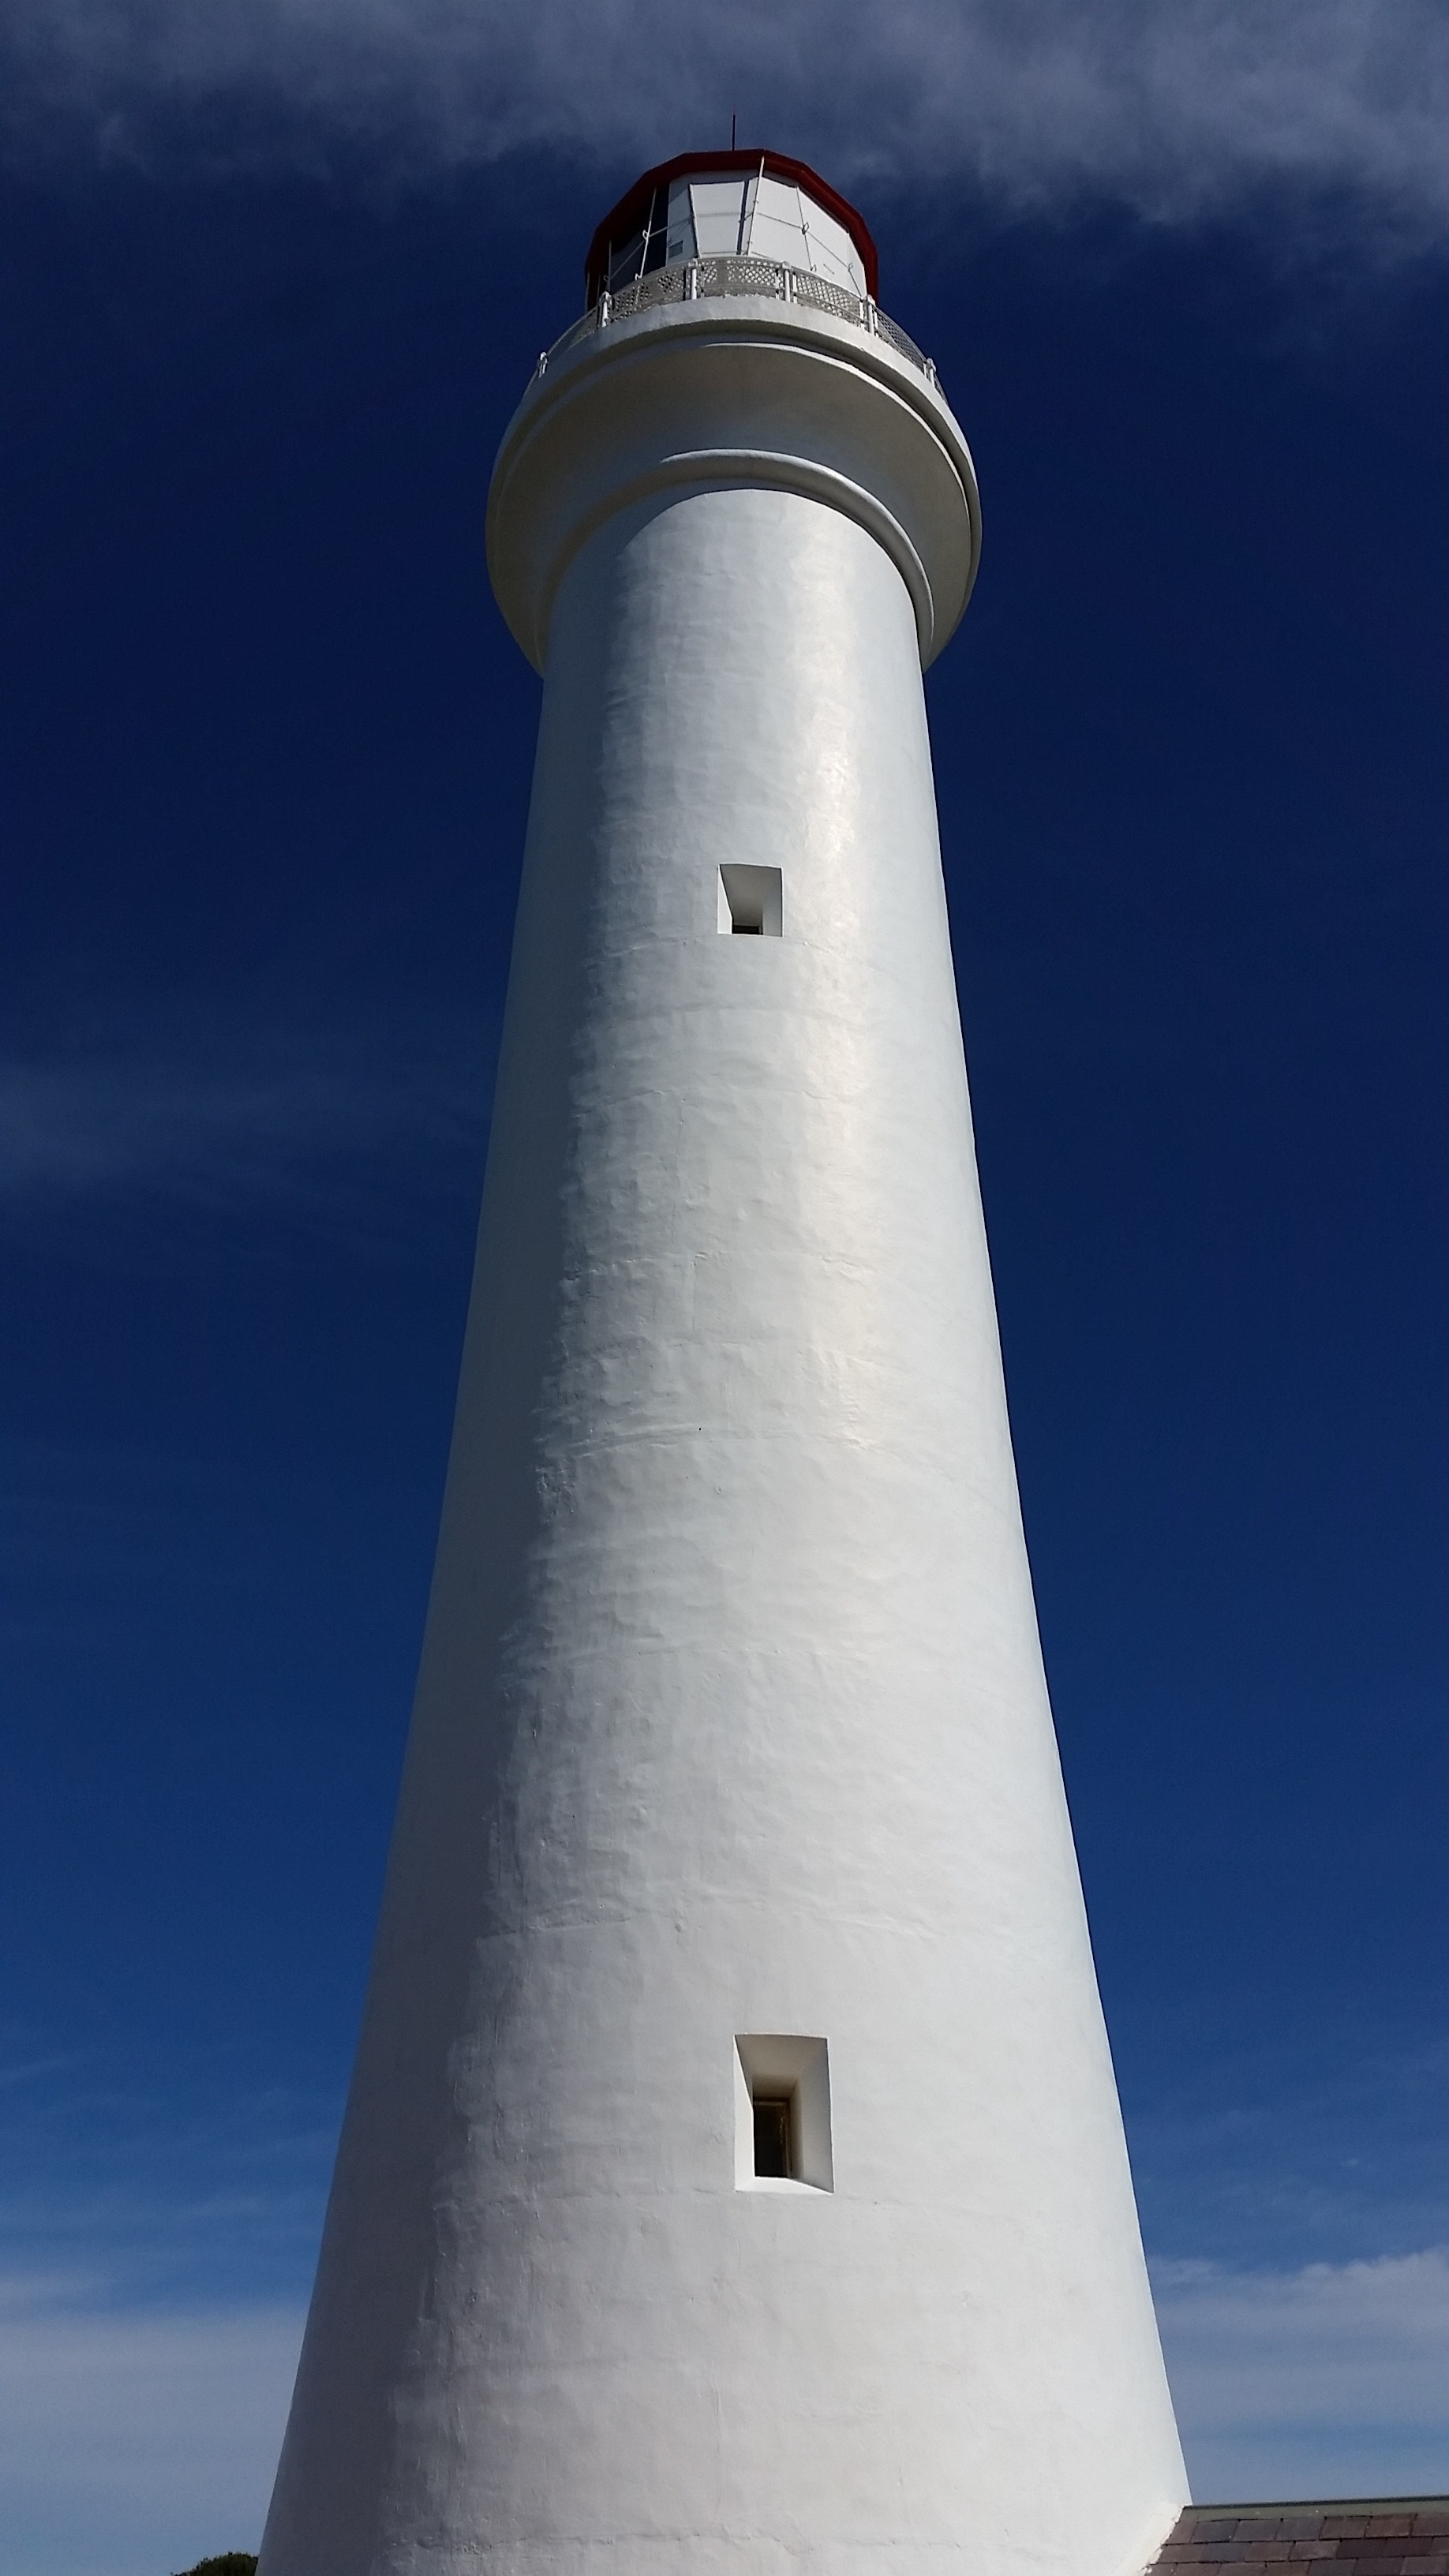 White Lighthouse in Low Angle Photography, Architecture, Building, Cloud, Clouds, HQ Photo